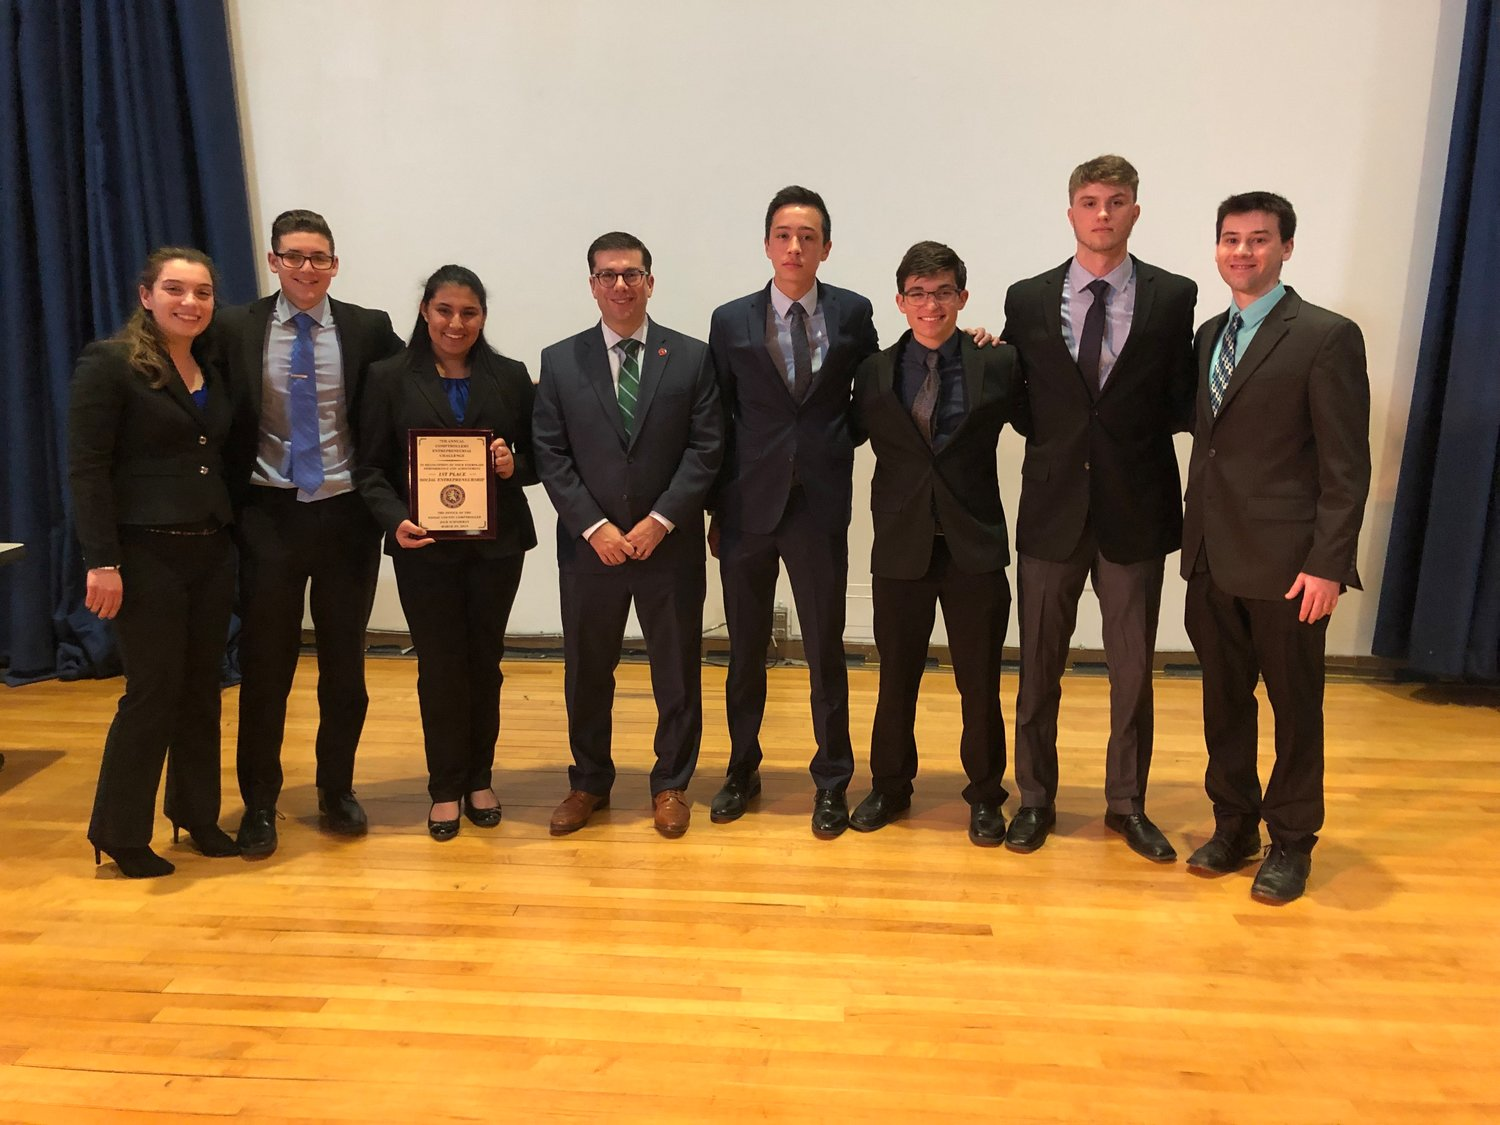 East Meadow High School students earned first place at the Nassau County Comptroller's Entrepreneurial Challenge on March 29 at SUNY Old Westbury.